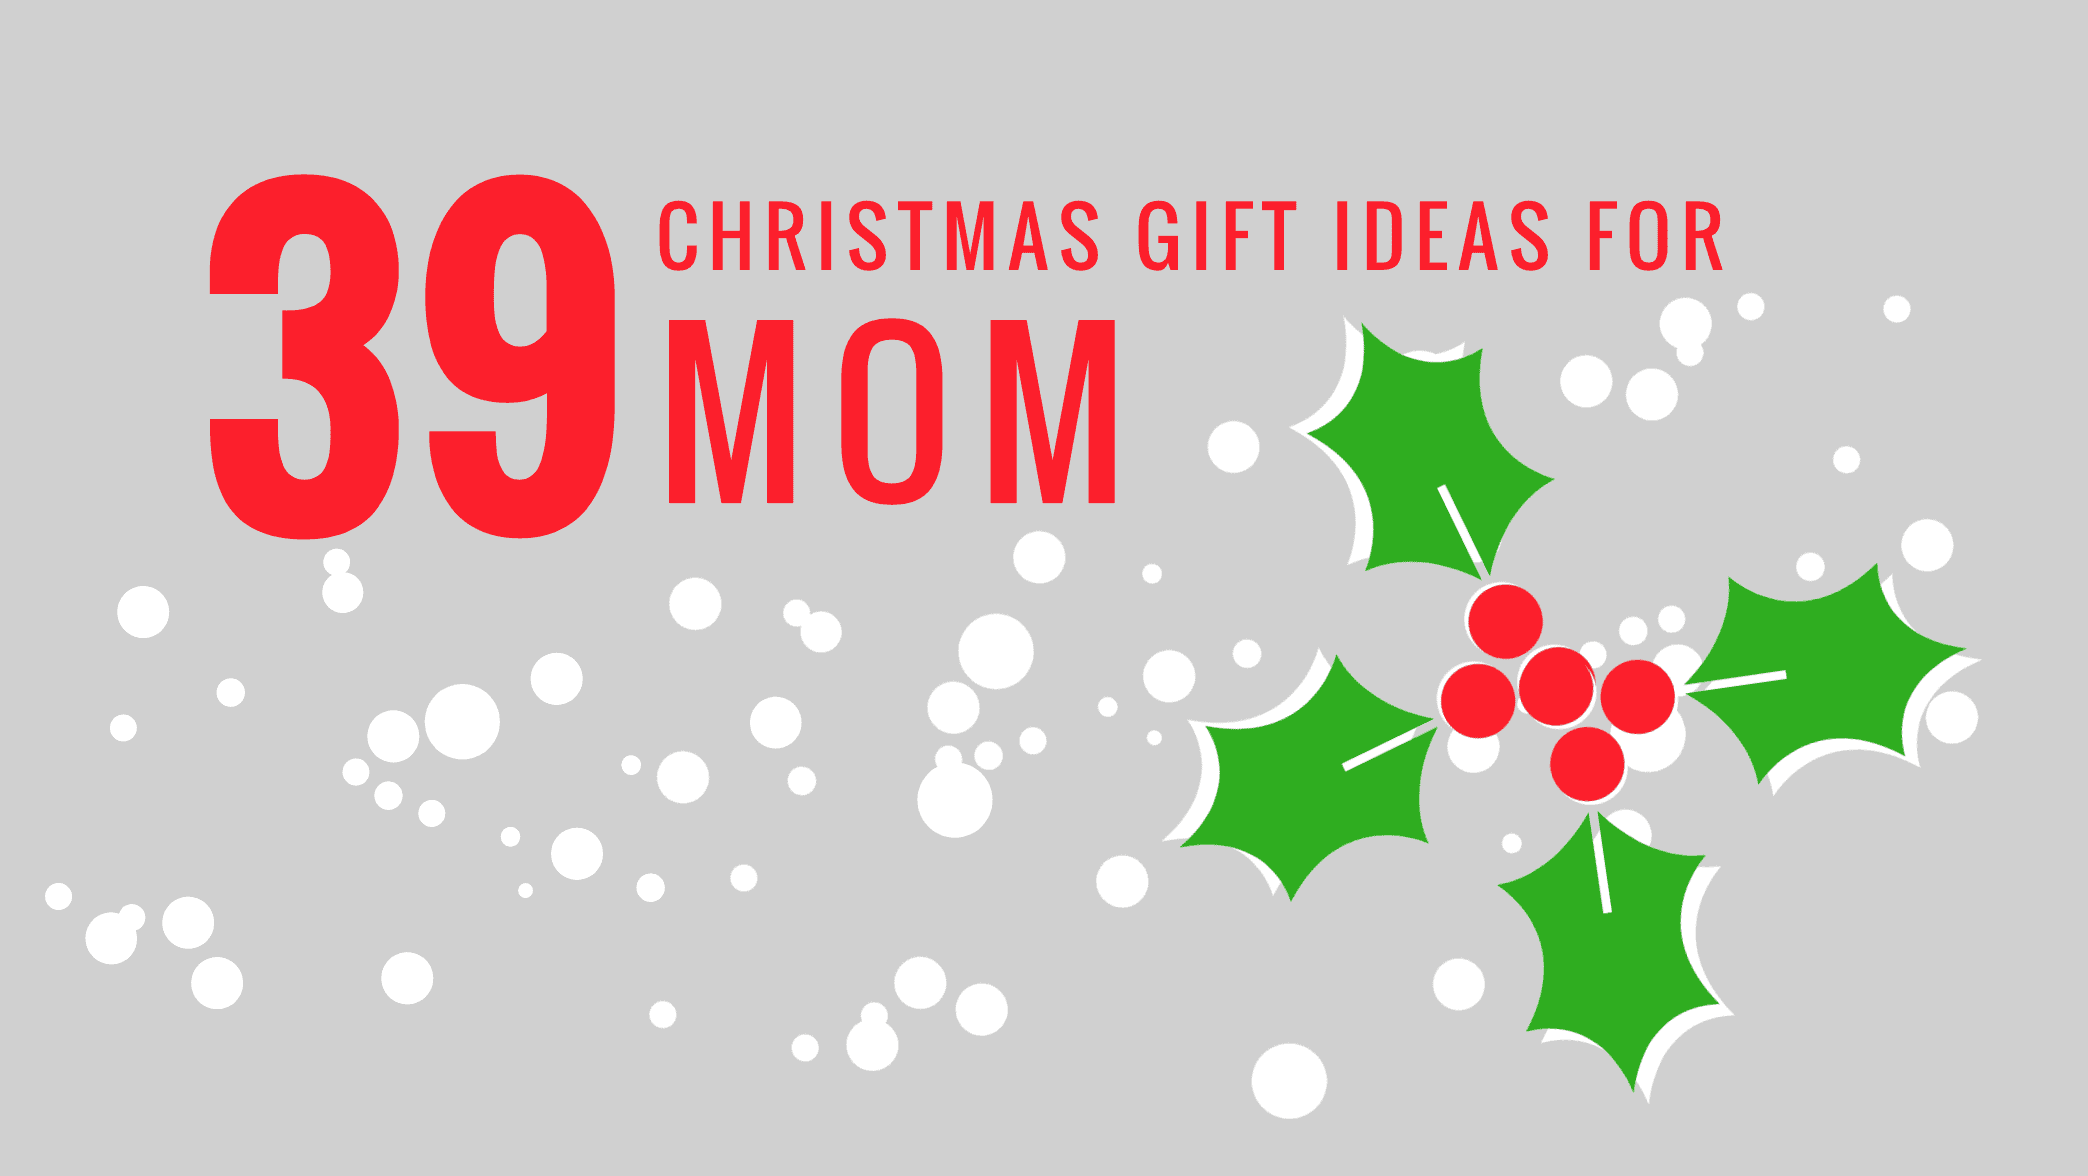 39 Christmas Gift Ideas for Mom - Stuffers for Stockings